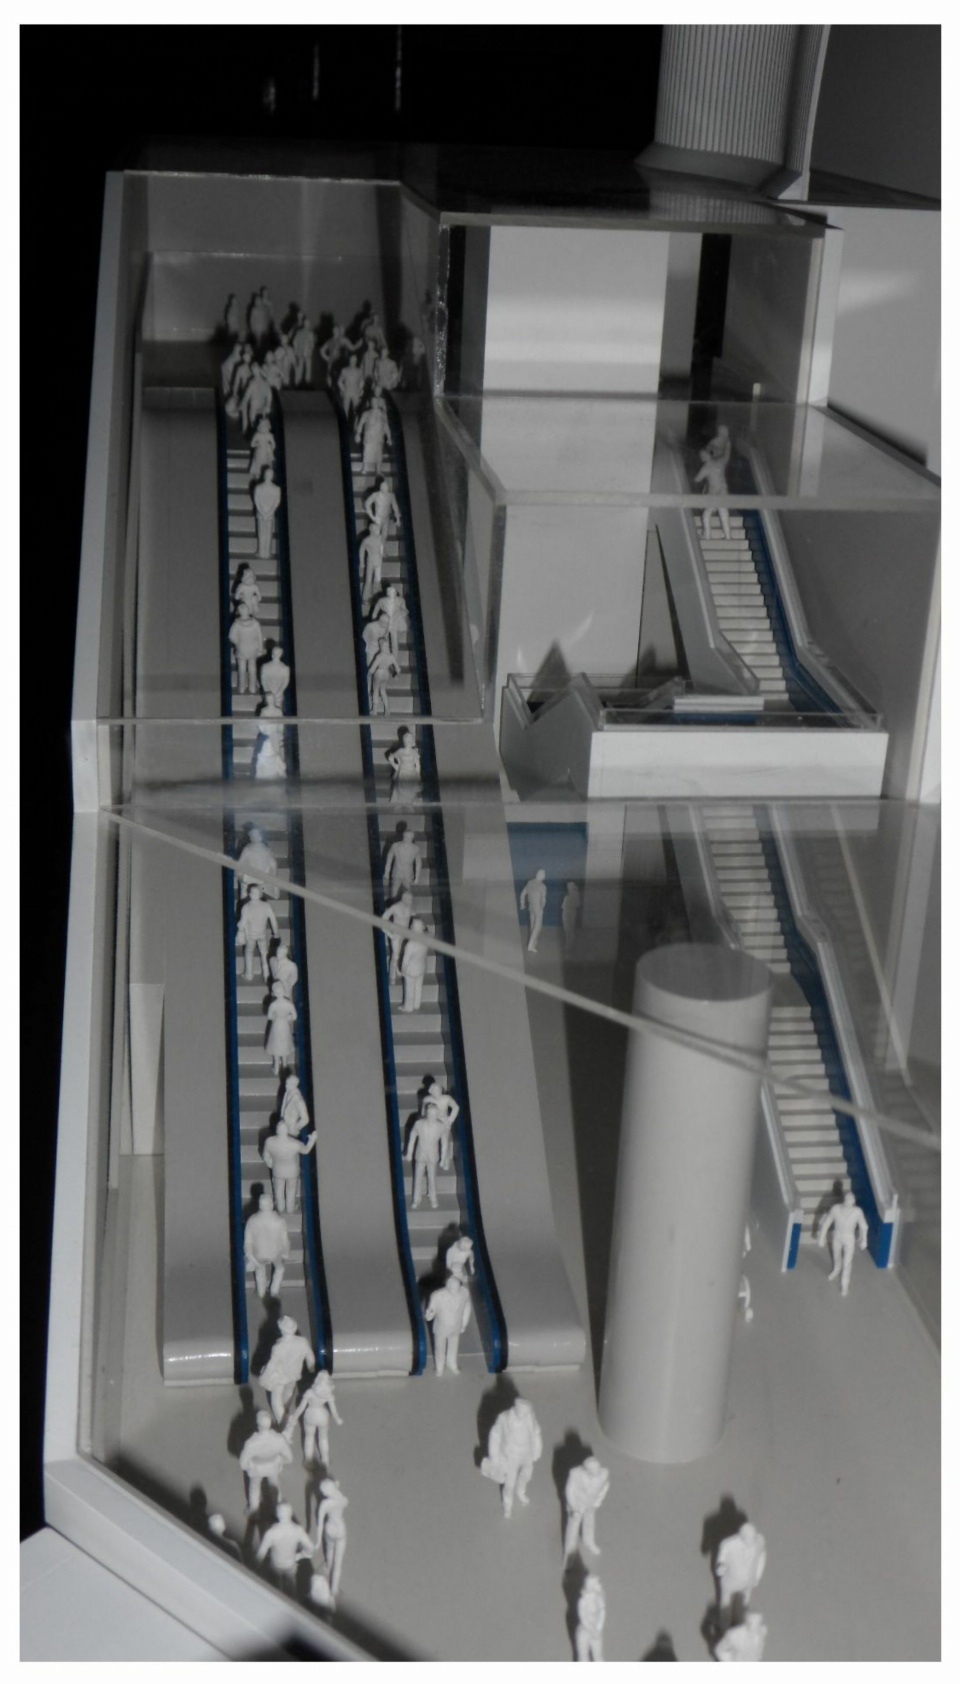 Details of stairs, lift and escalators resized